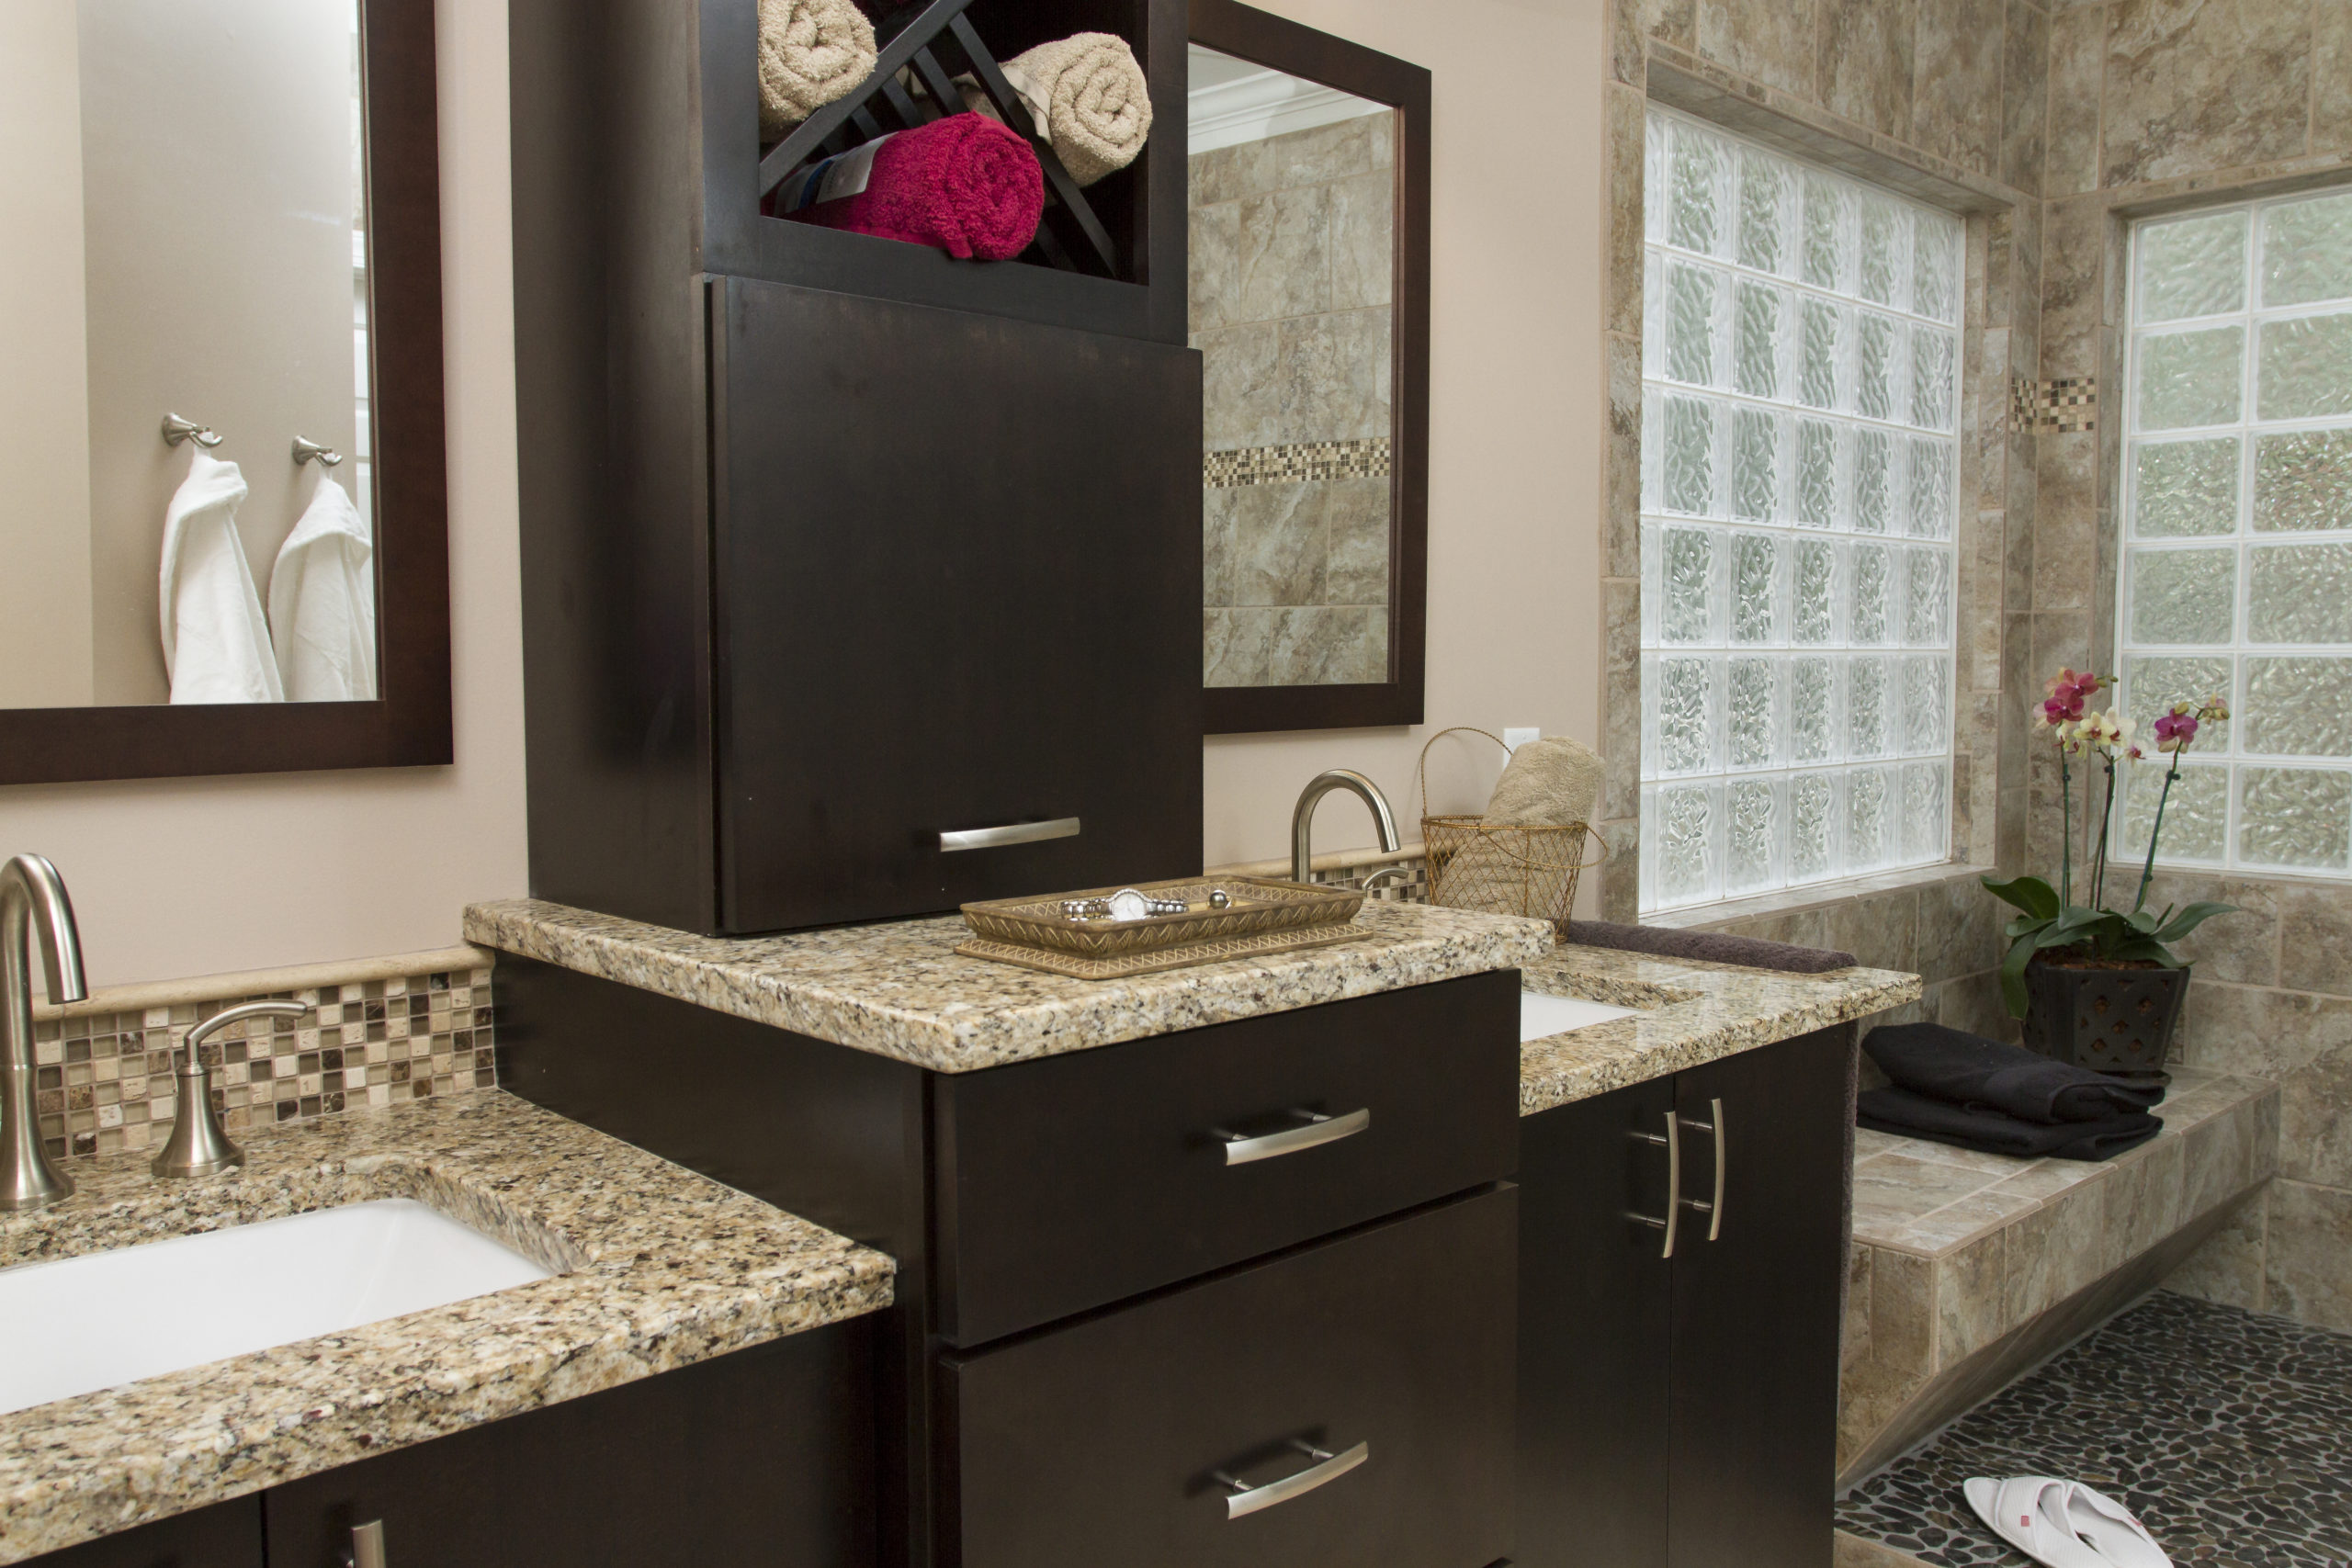 Bathroom Remodeling Cary Nc Design bathroom and kitchen design remodeling | cary raleigh chapel hill nc